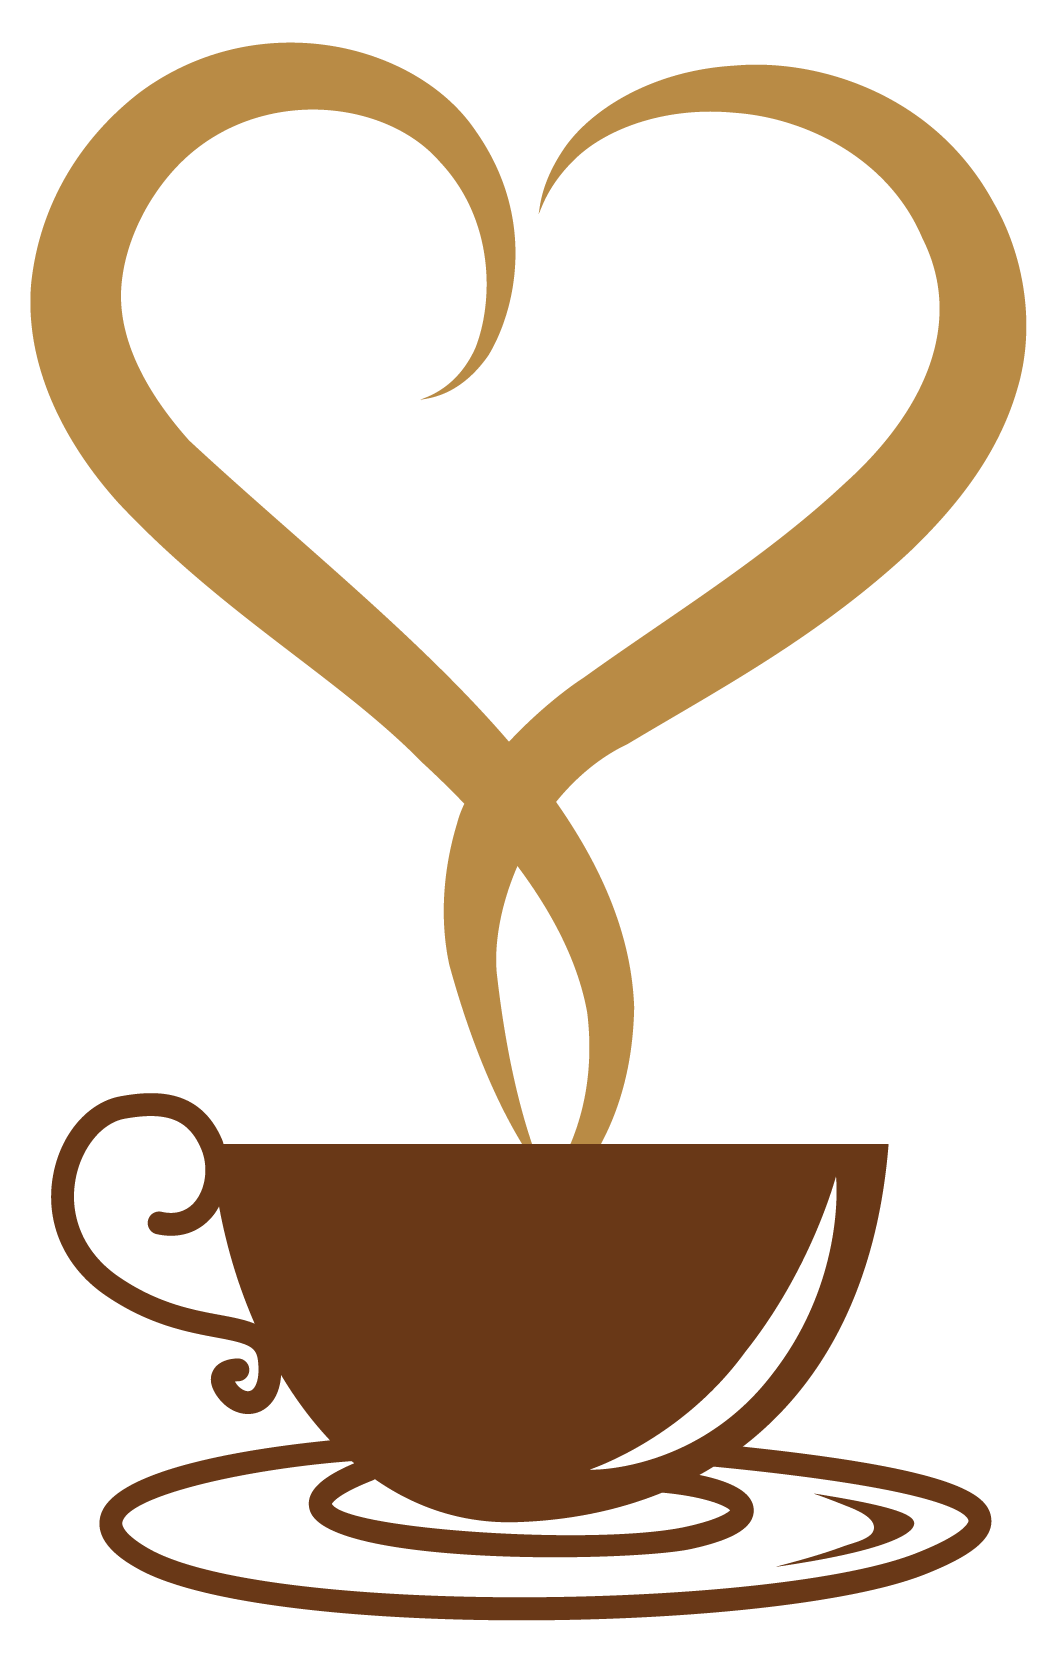 Coffee clipart #5